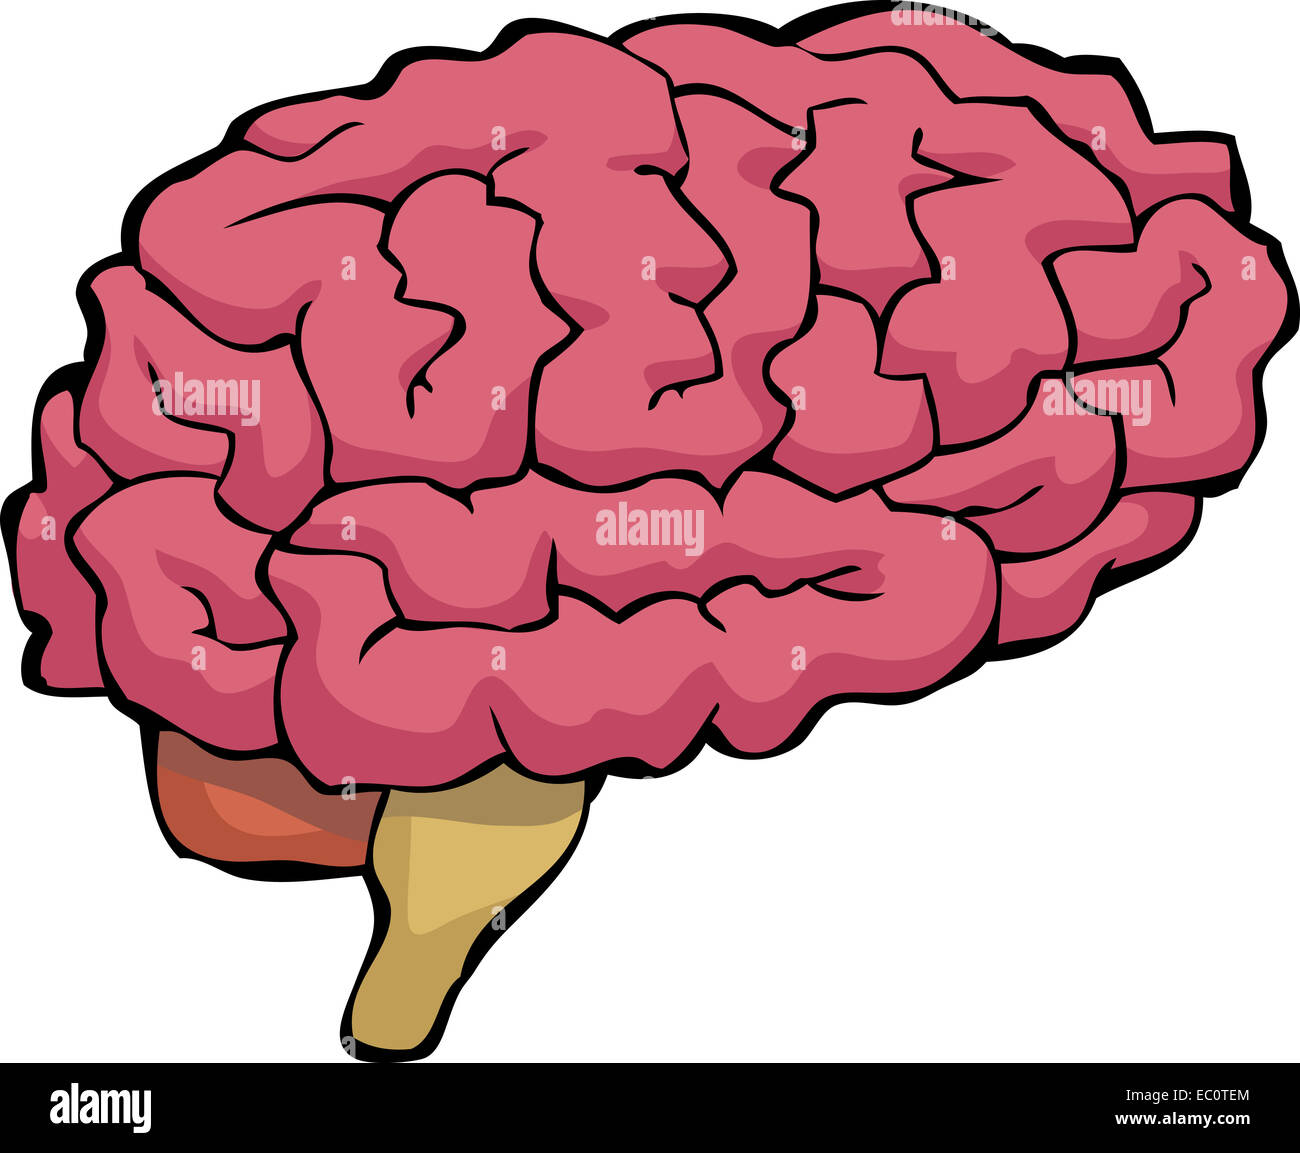 Brain on a white background - Stock Image